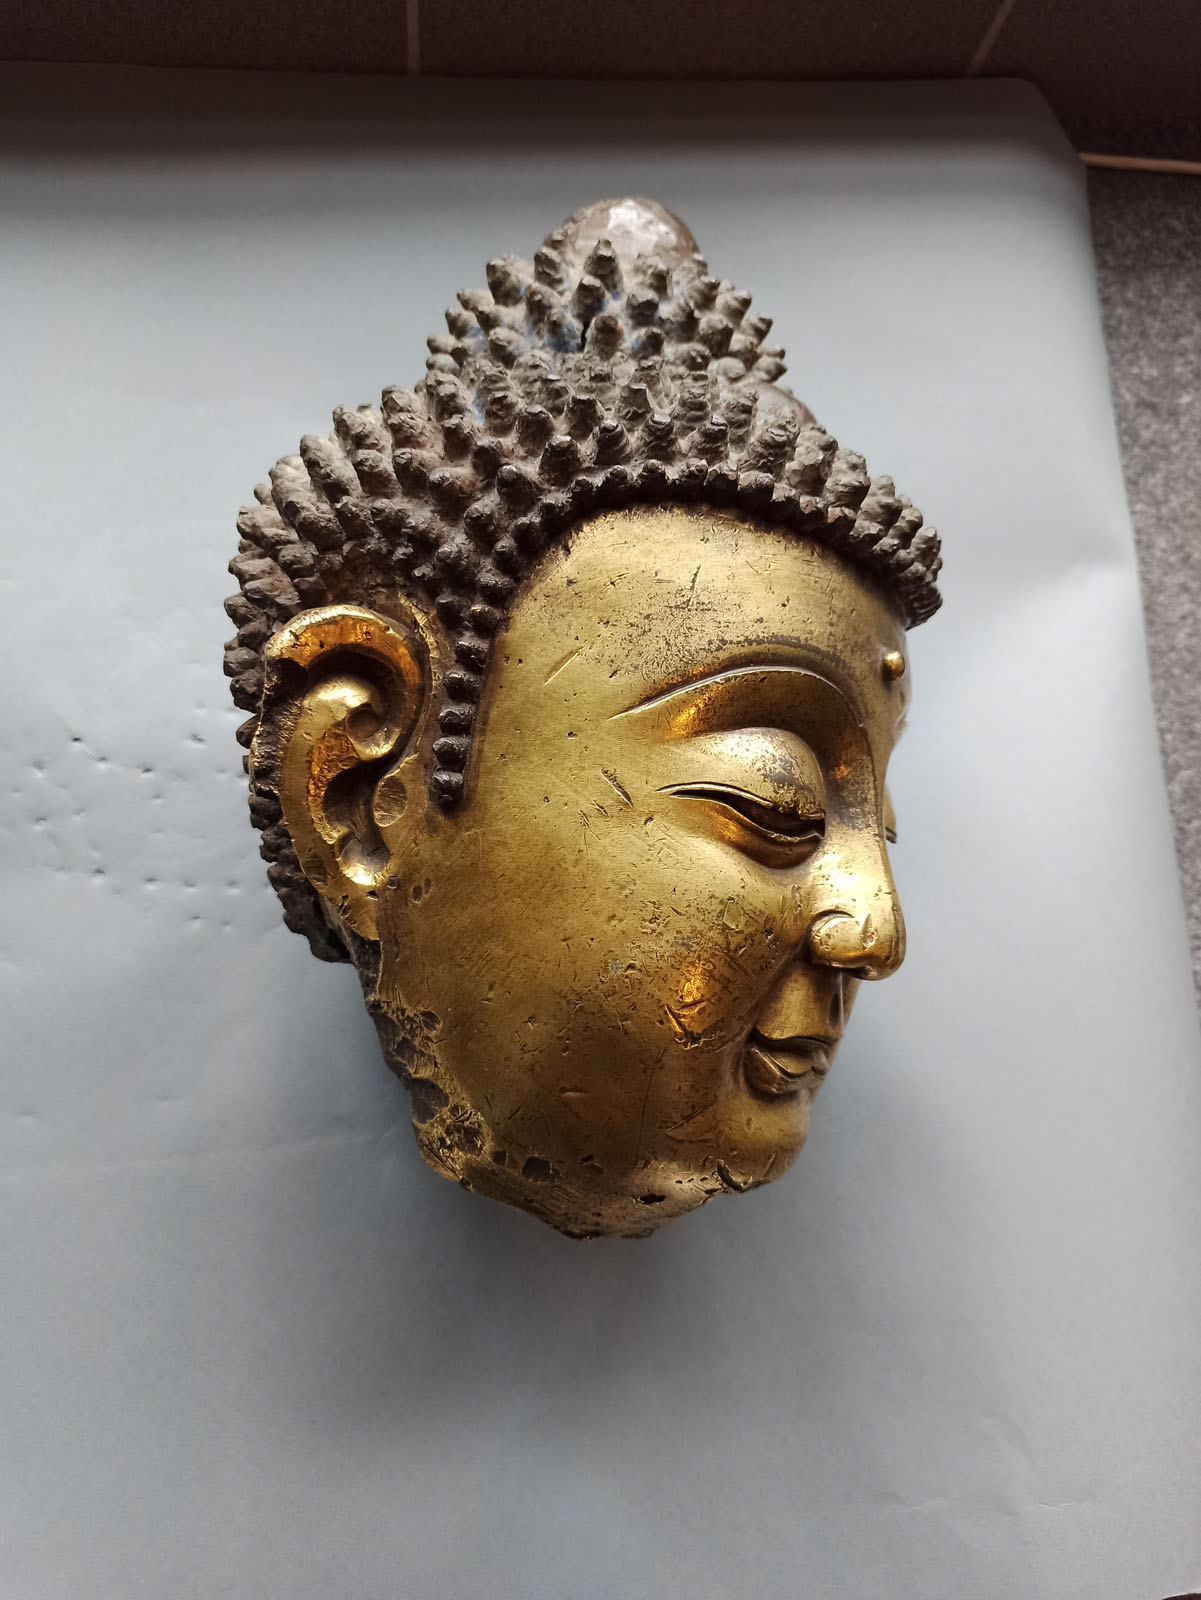 A LARGE GILT-BRONZE HEAD OF BUDDHA ON A WOOD STAND - Image 7 of 13